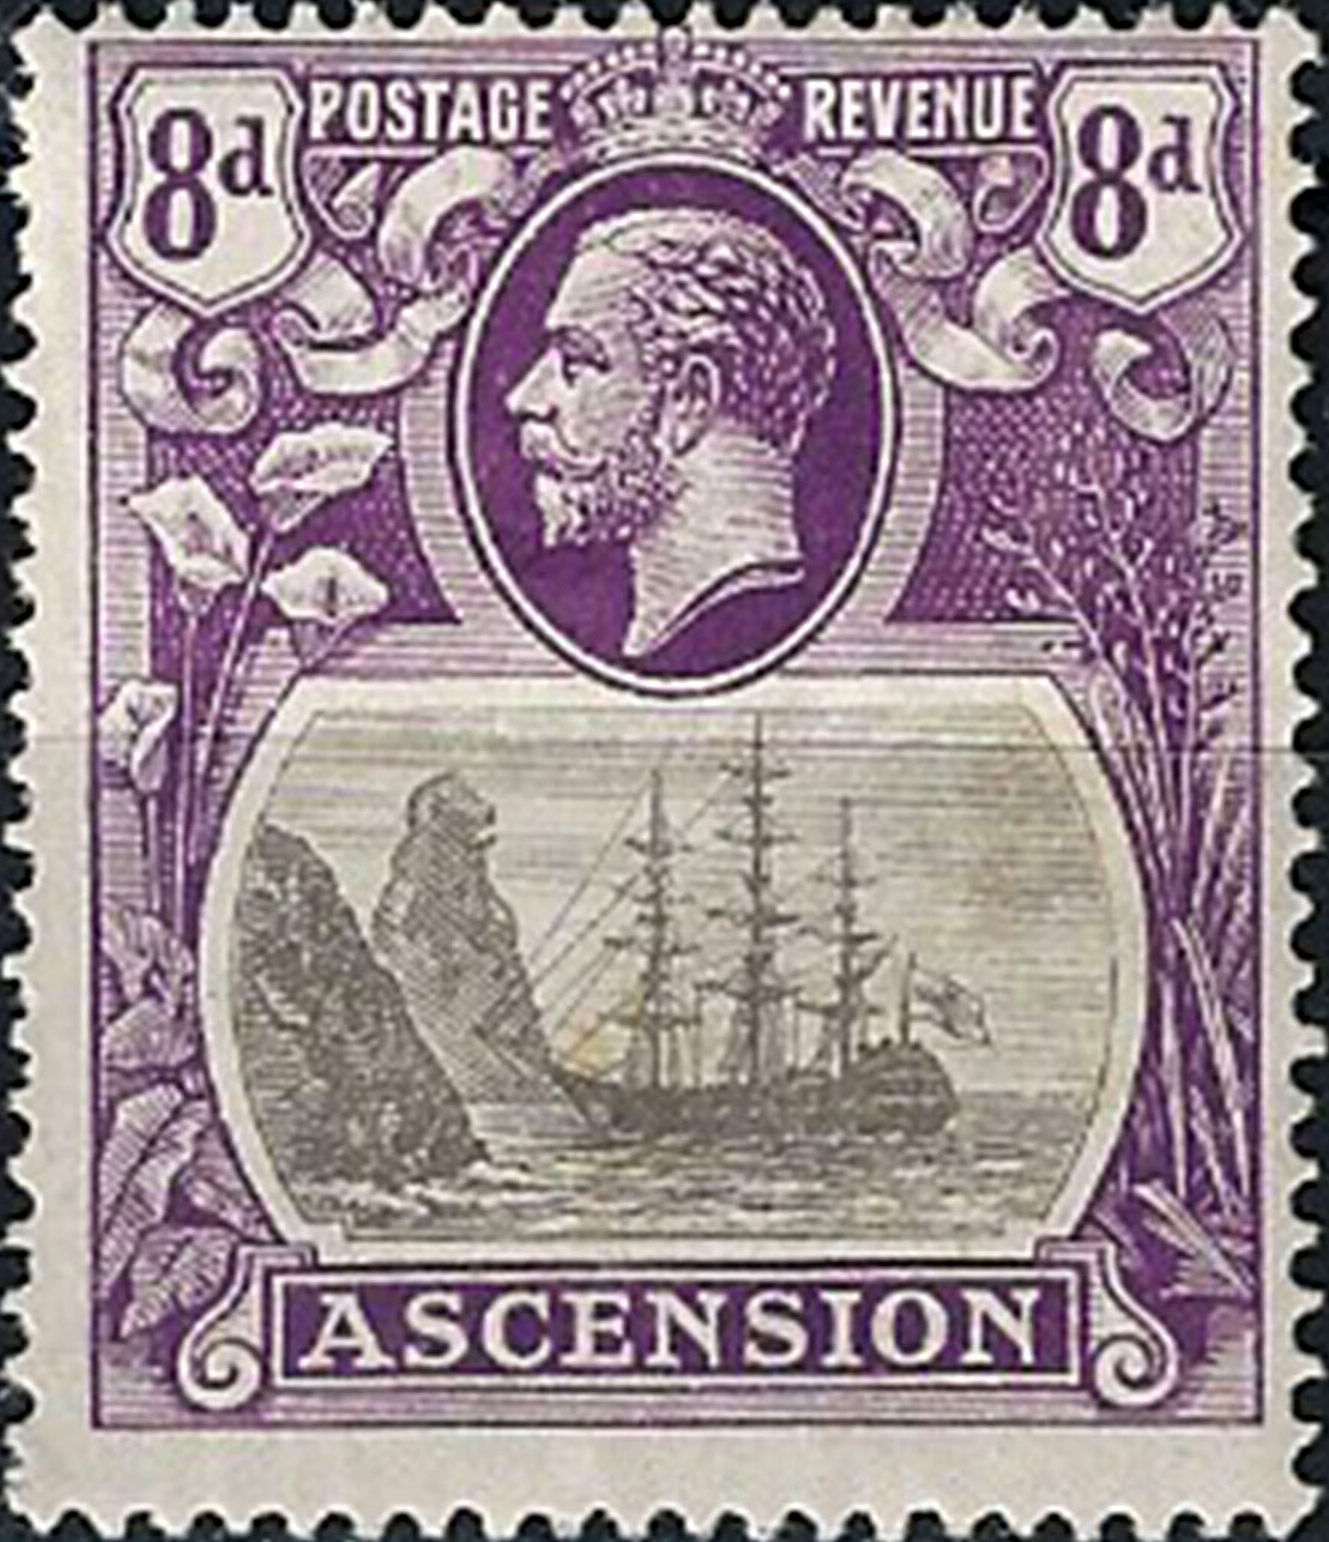 Ascension 1924 Seal of the Colony ic.jpg